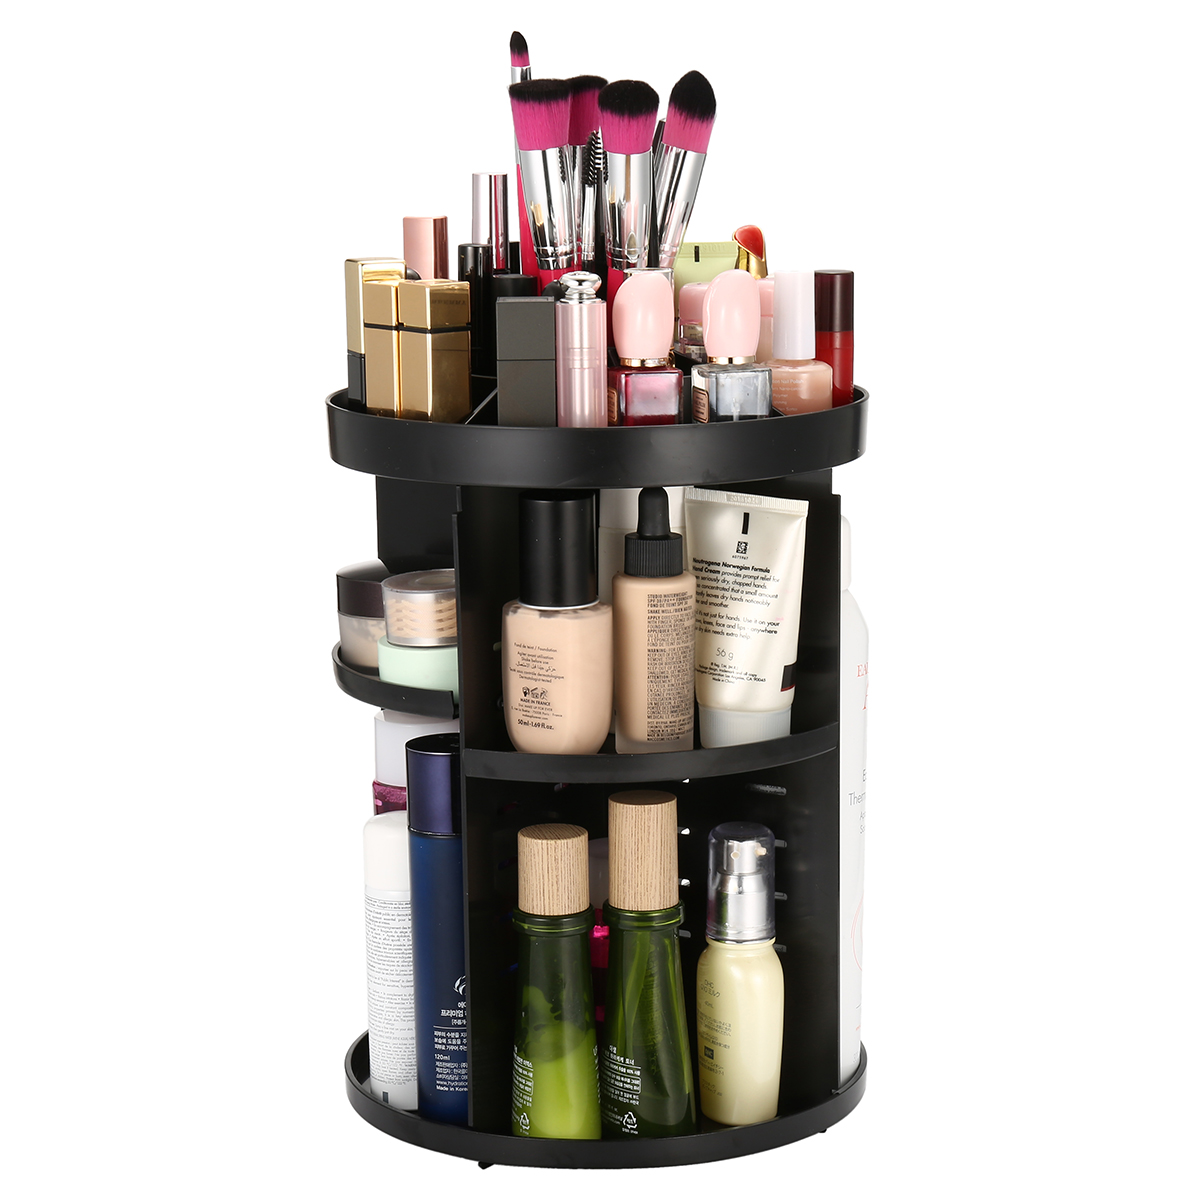 Makeup Organizer Shelf, 360 Degree Rotating Adjustable Multi-Function Cosmetics Storage Box for Different Sizes of Cosmetics,Makeup Brushes,Space-Saving